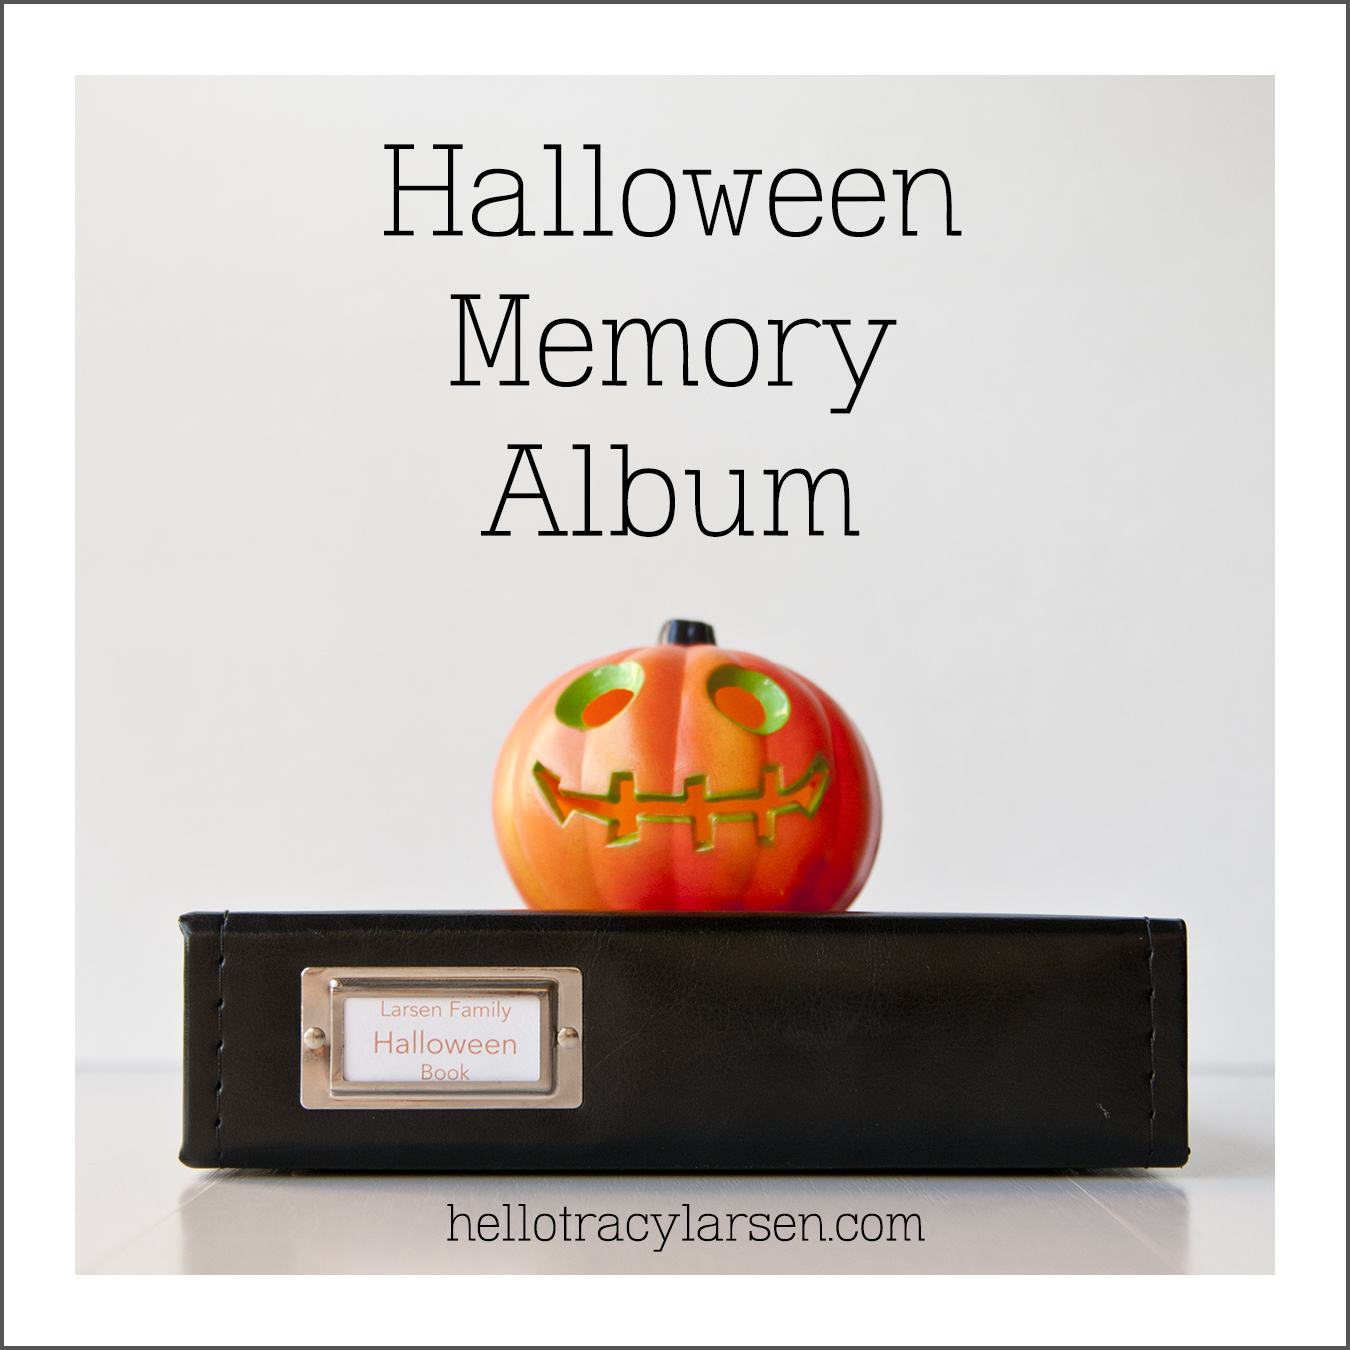 Halloween memory album + photo book  ==> hellotracylarsen.com